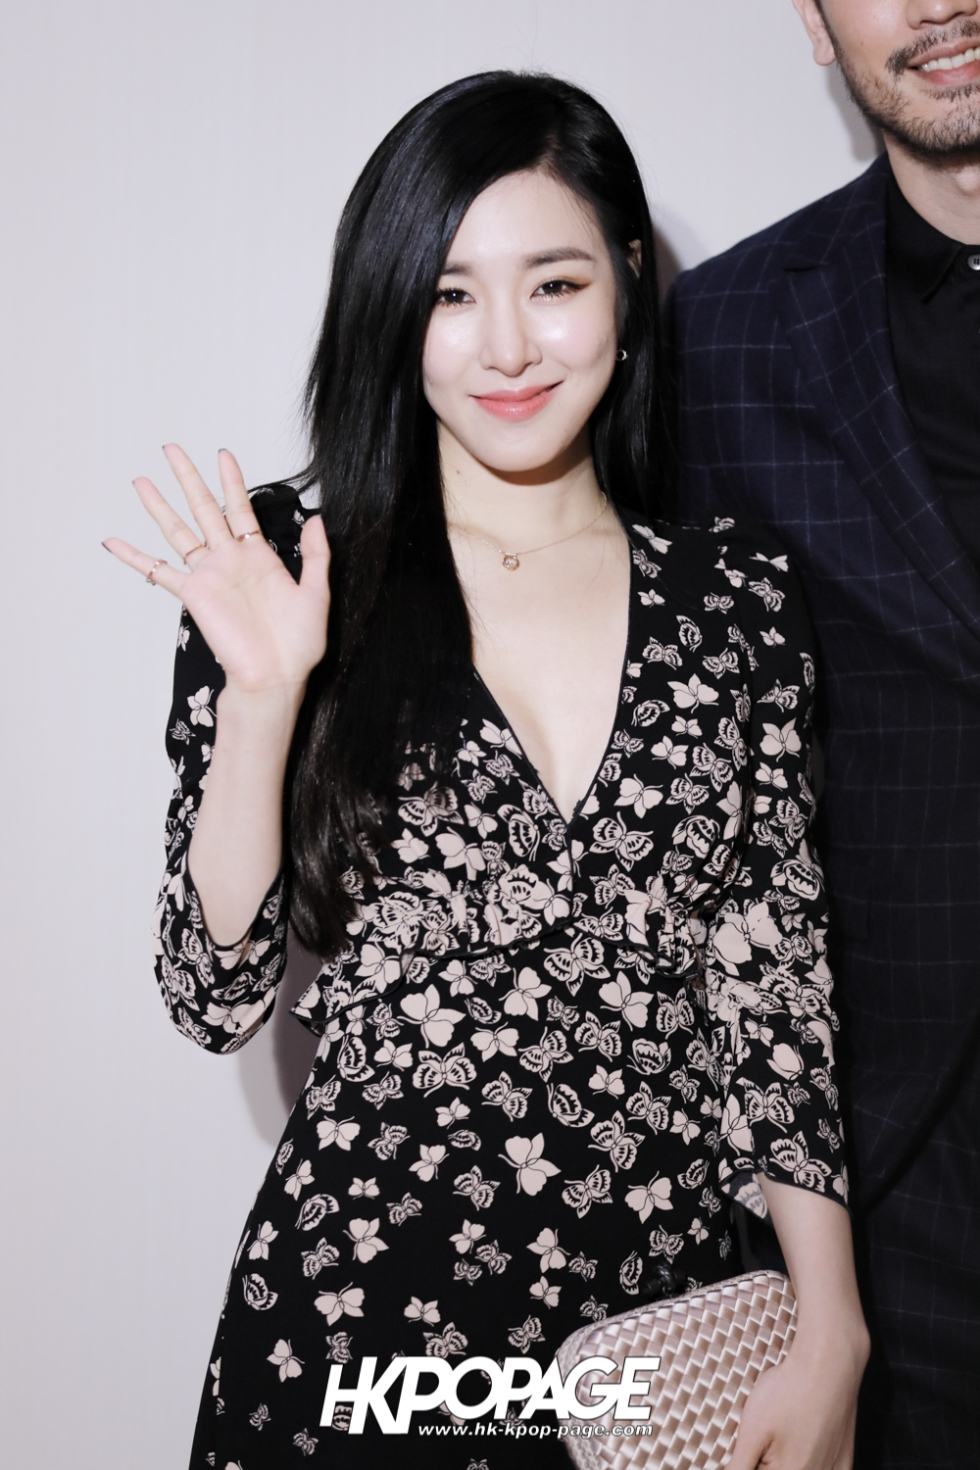 [HK.KPOP.PAGE] 171130_Tiffany Bottega Veneta Event in Hong Kong_05